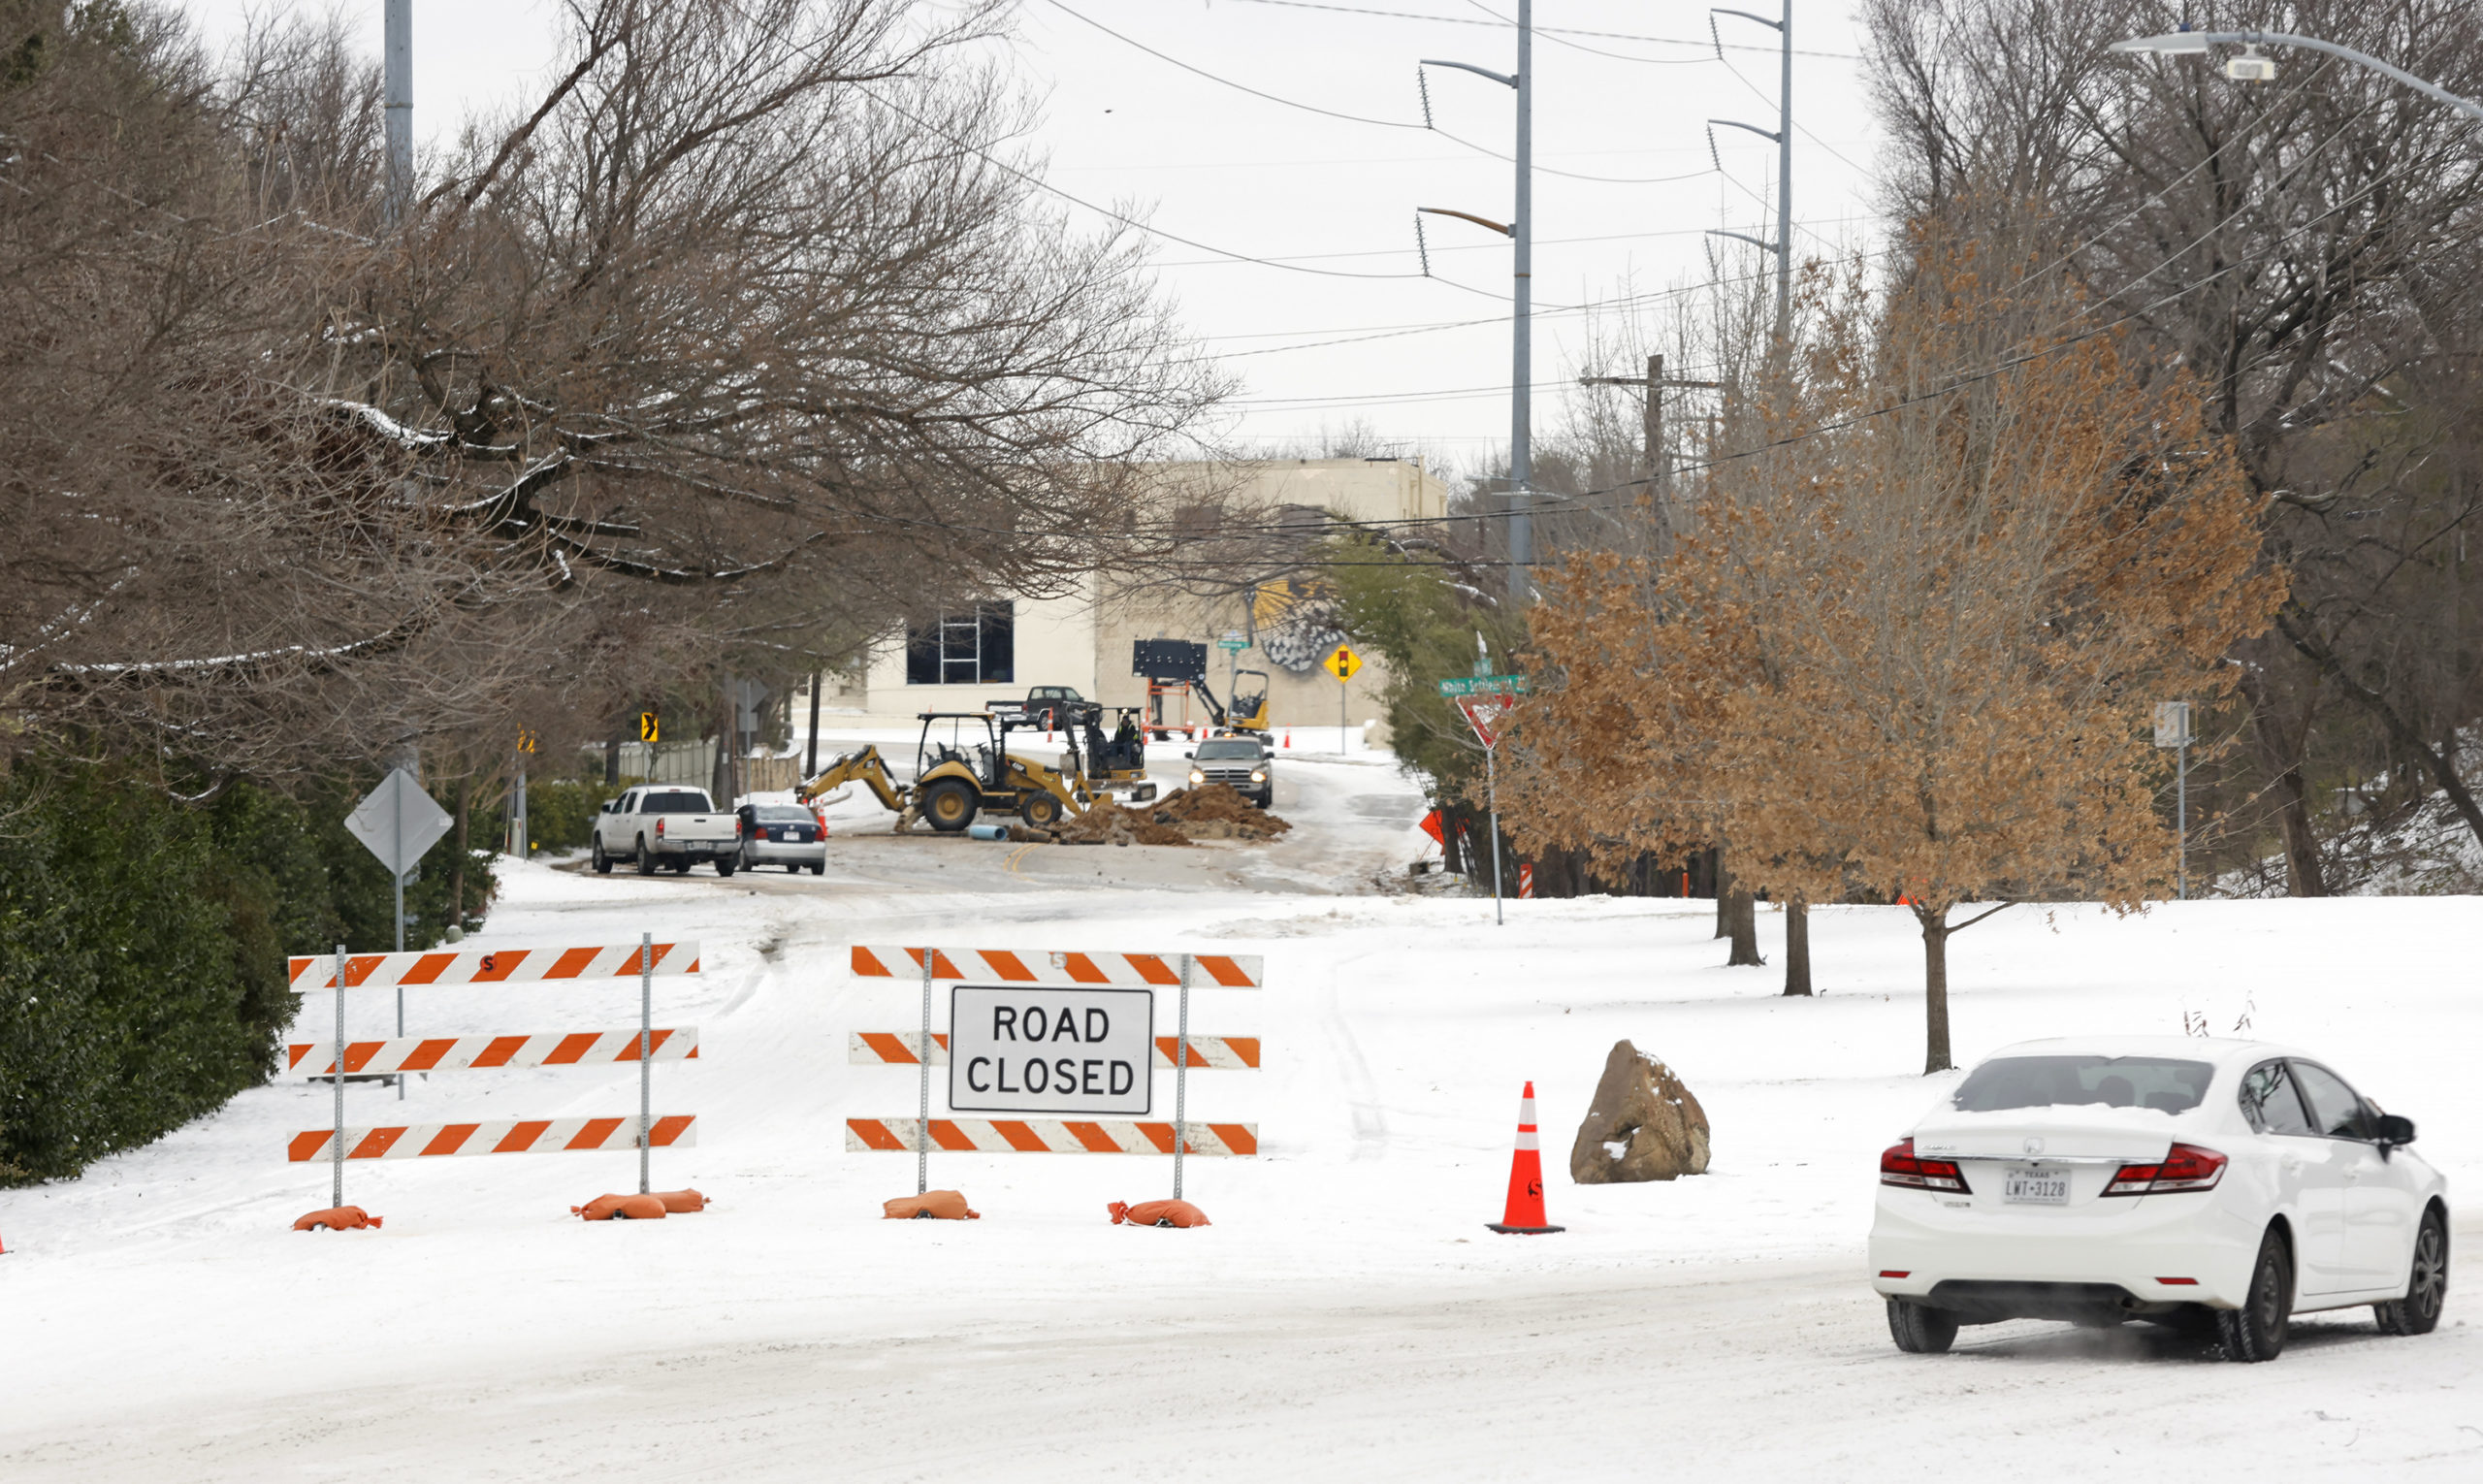 FORT WORTH, TX - FEBRUARY 18: Drivers detour around a water pipe repair crew after a snow storm on February 18, 2021 in Fort Worth, Texas. Winter storm Uri has brought historic cold weather and power outages to Texas. Residents have gone days without electricity and fresh water after a catastrophic failure of the power grid in the state. (Photo by Ron Jenkins/Getty Images)